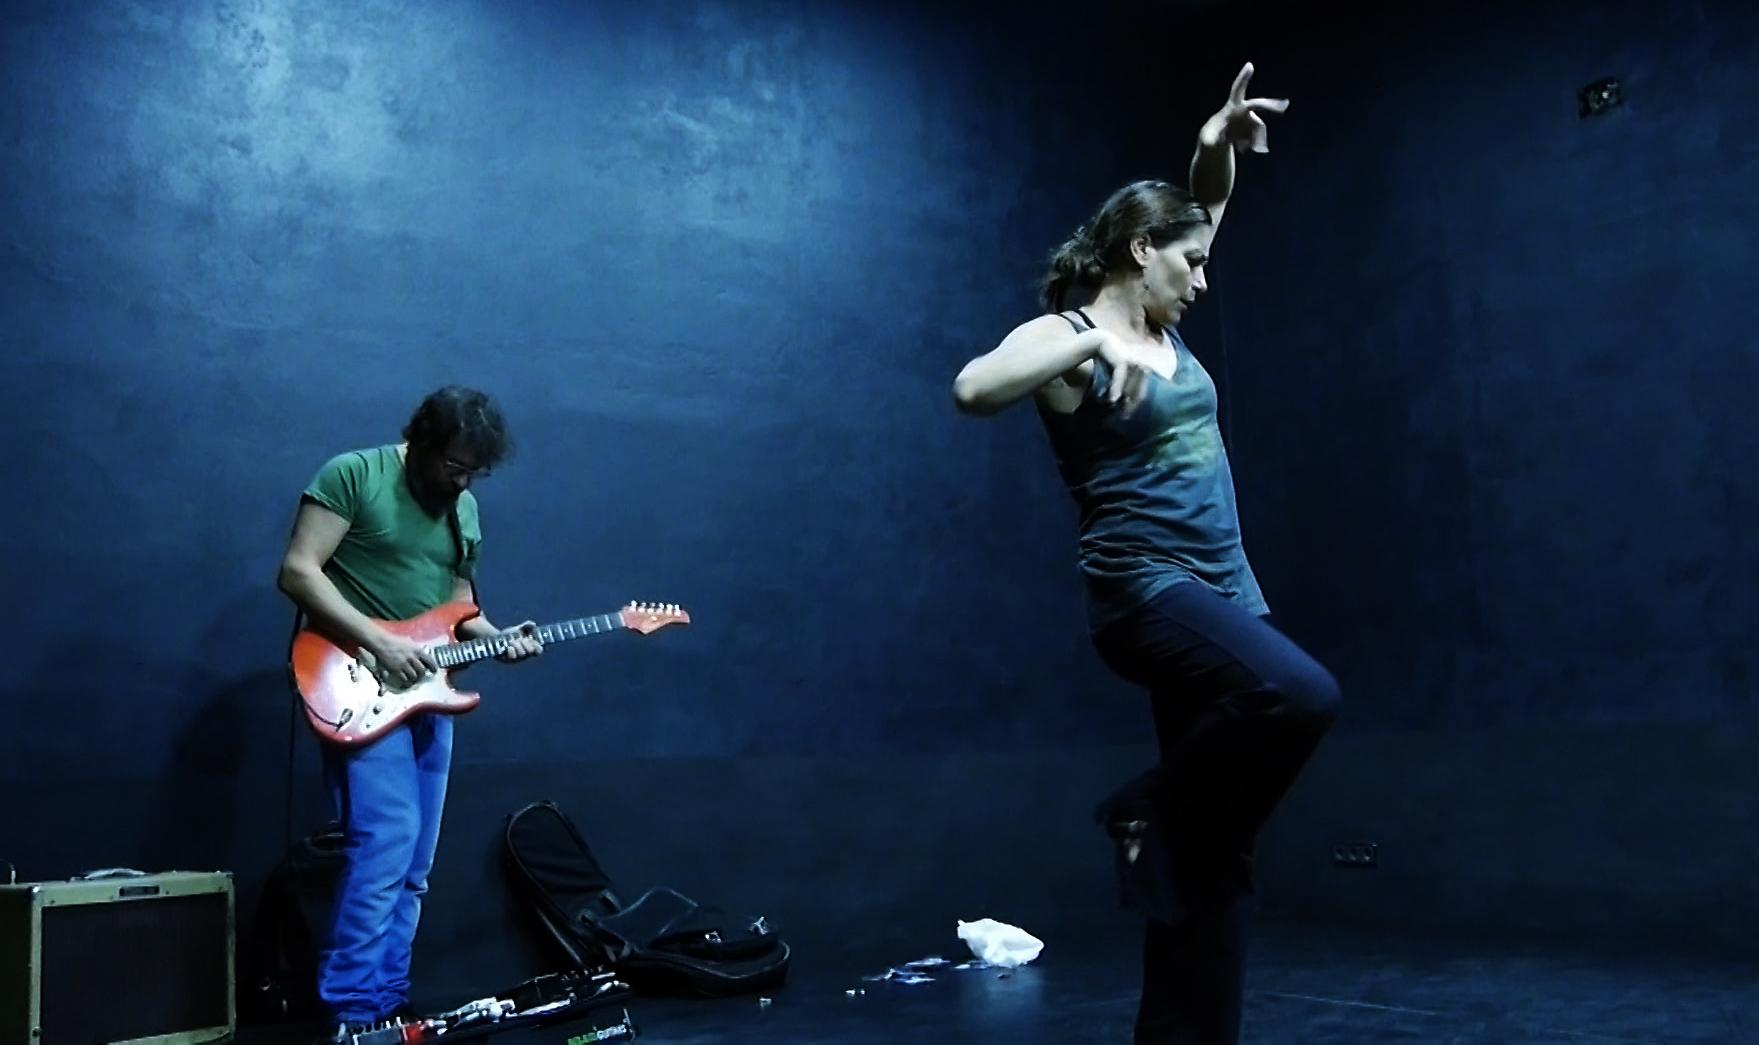 A woman wearing everyday clothes dances in a contemporary Flamenco style on a dark blue stage; behind her a man plays an electric guitar .